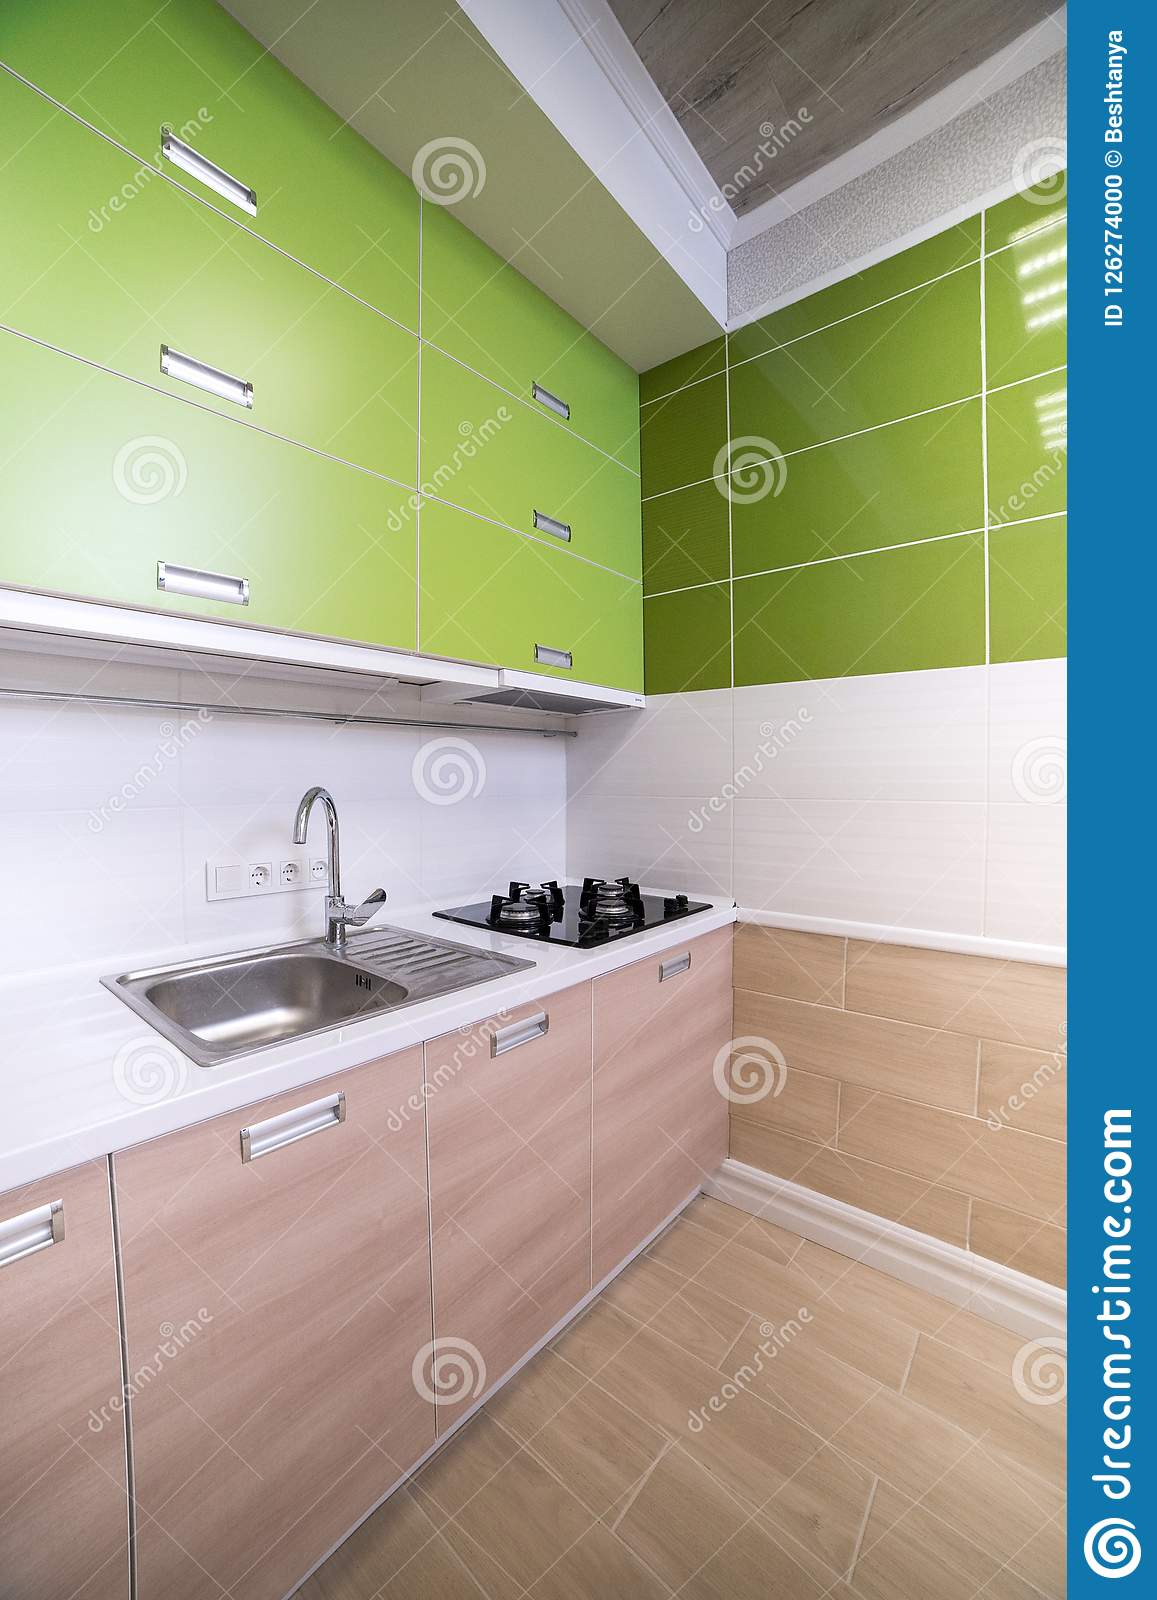 Luxurious Laundry In The House With Green Cupboards, Light ...